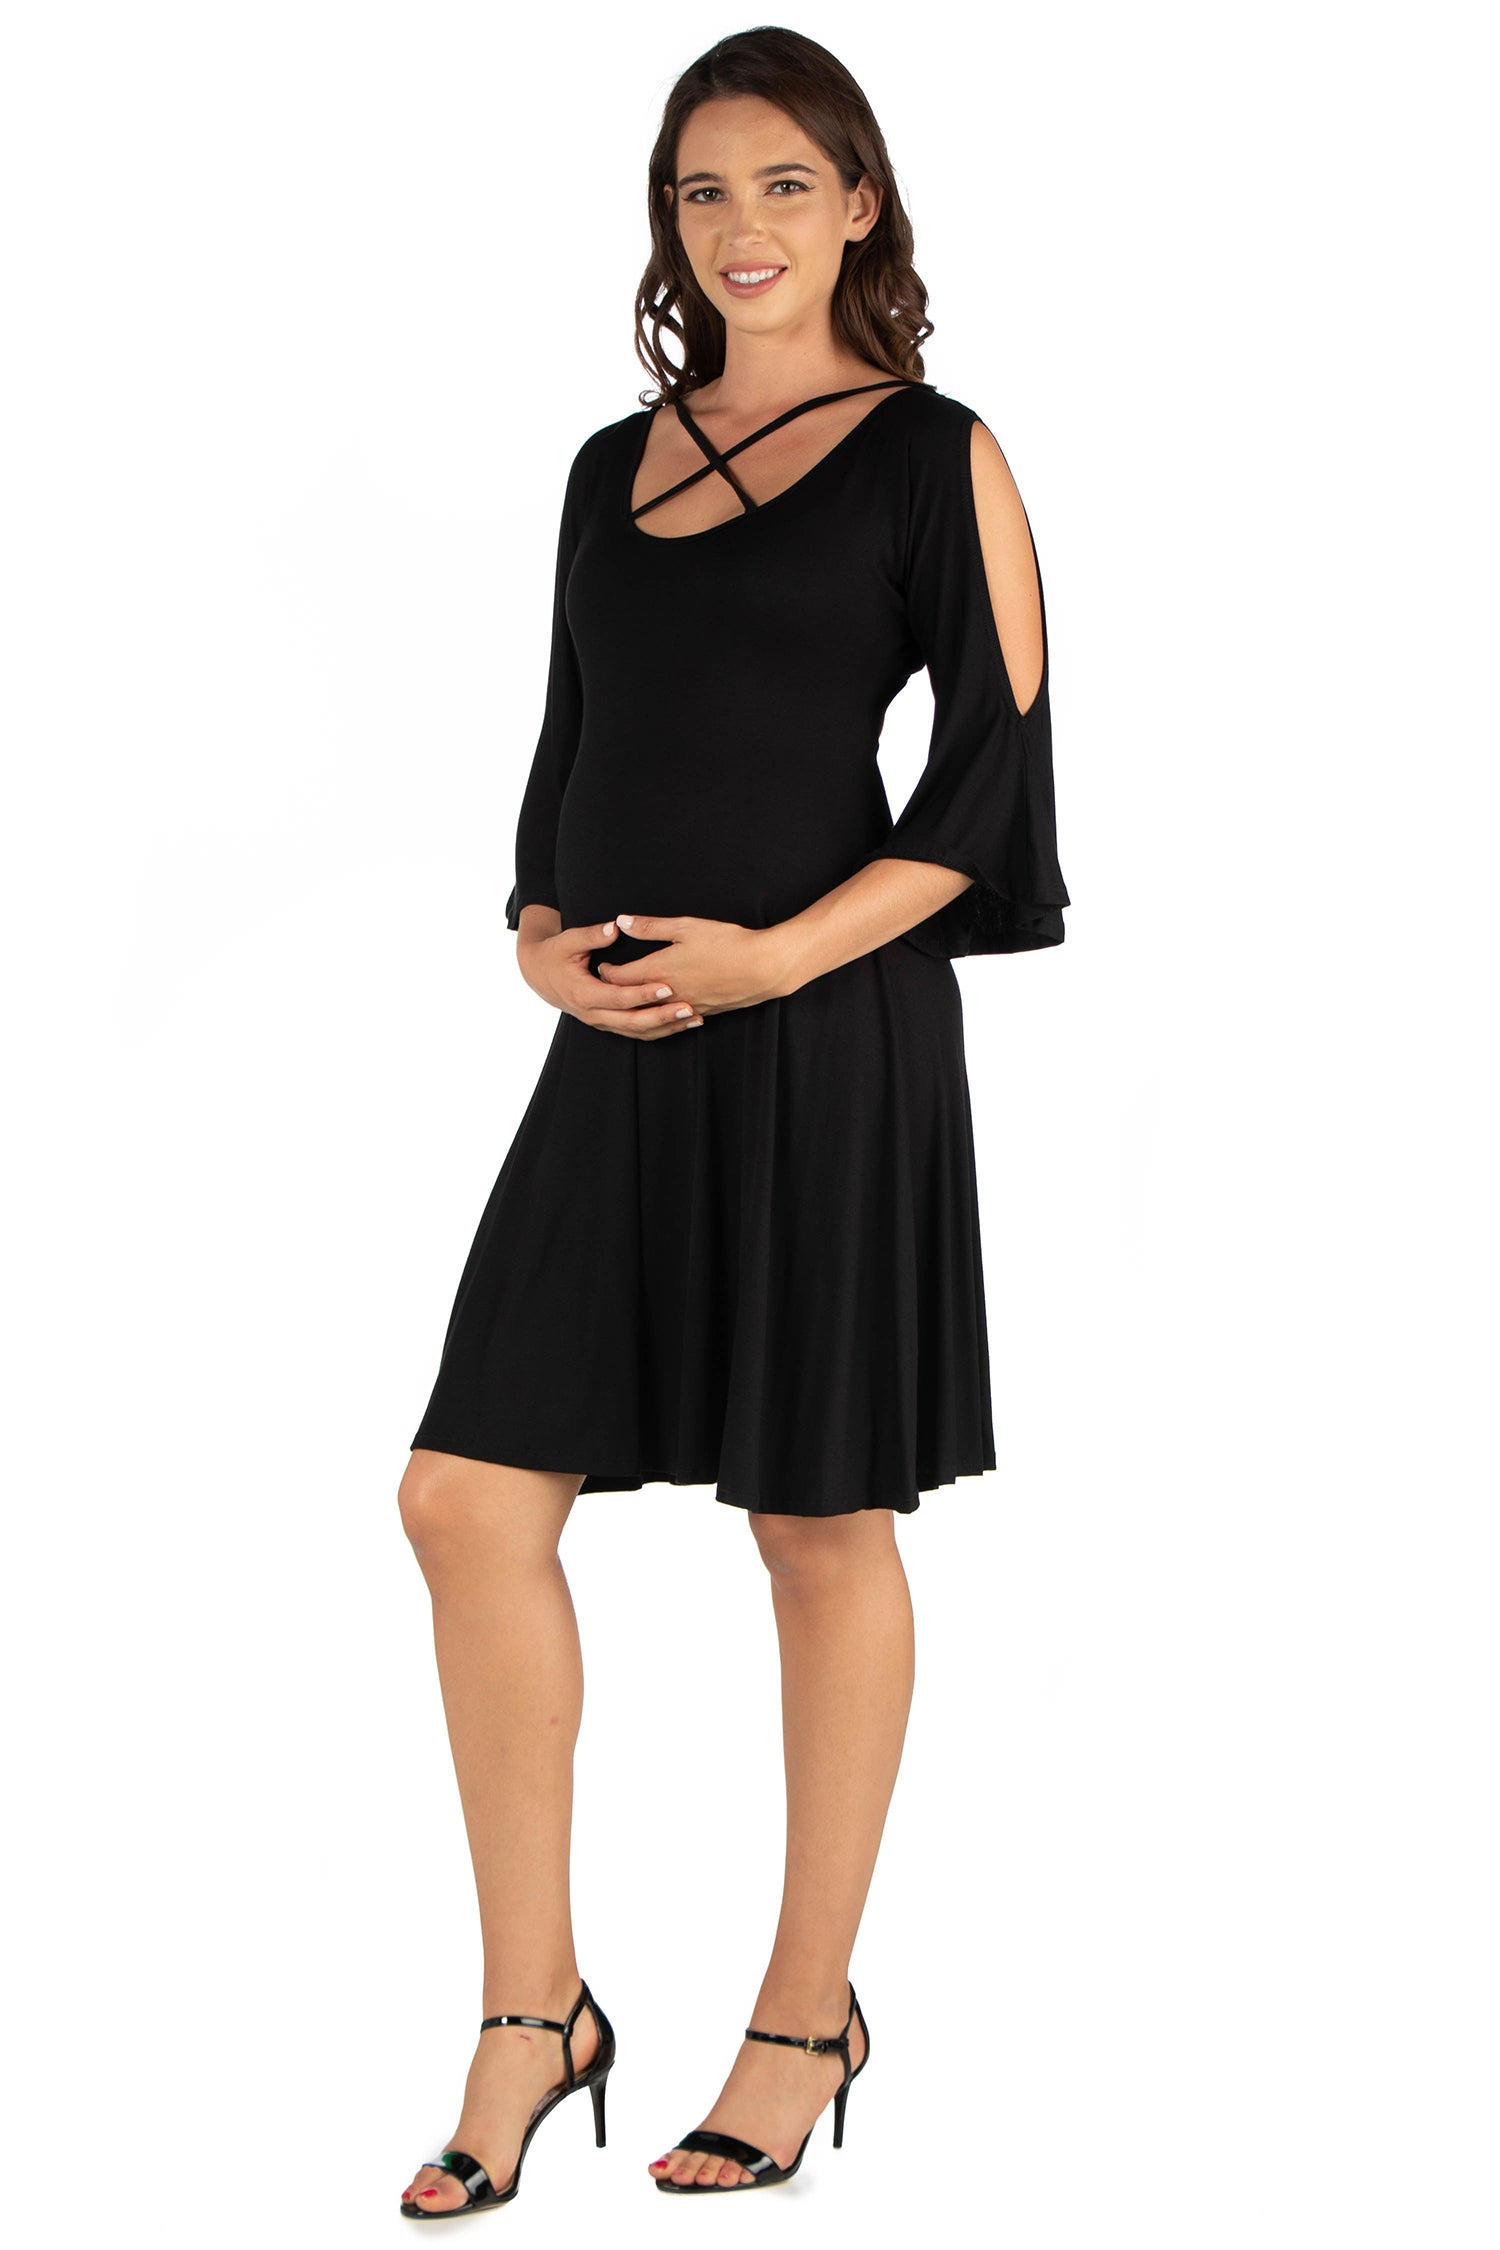 24seven Comfort Apparel Criss Cross Neckline Cold Shoulder Maternity Dress-DRESSES-24Seven Comfort Apparel-BLACK-1X-24/7 Comfort Apparel